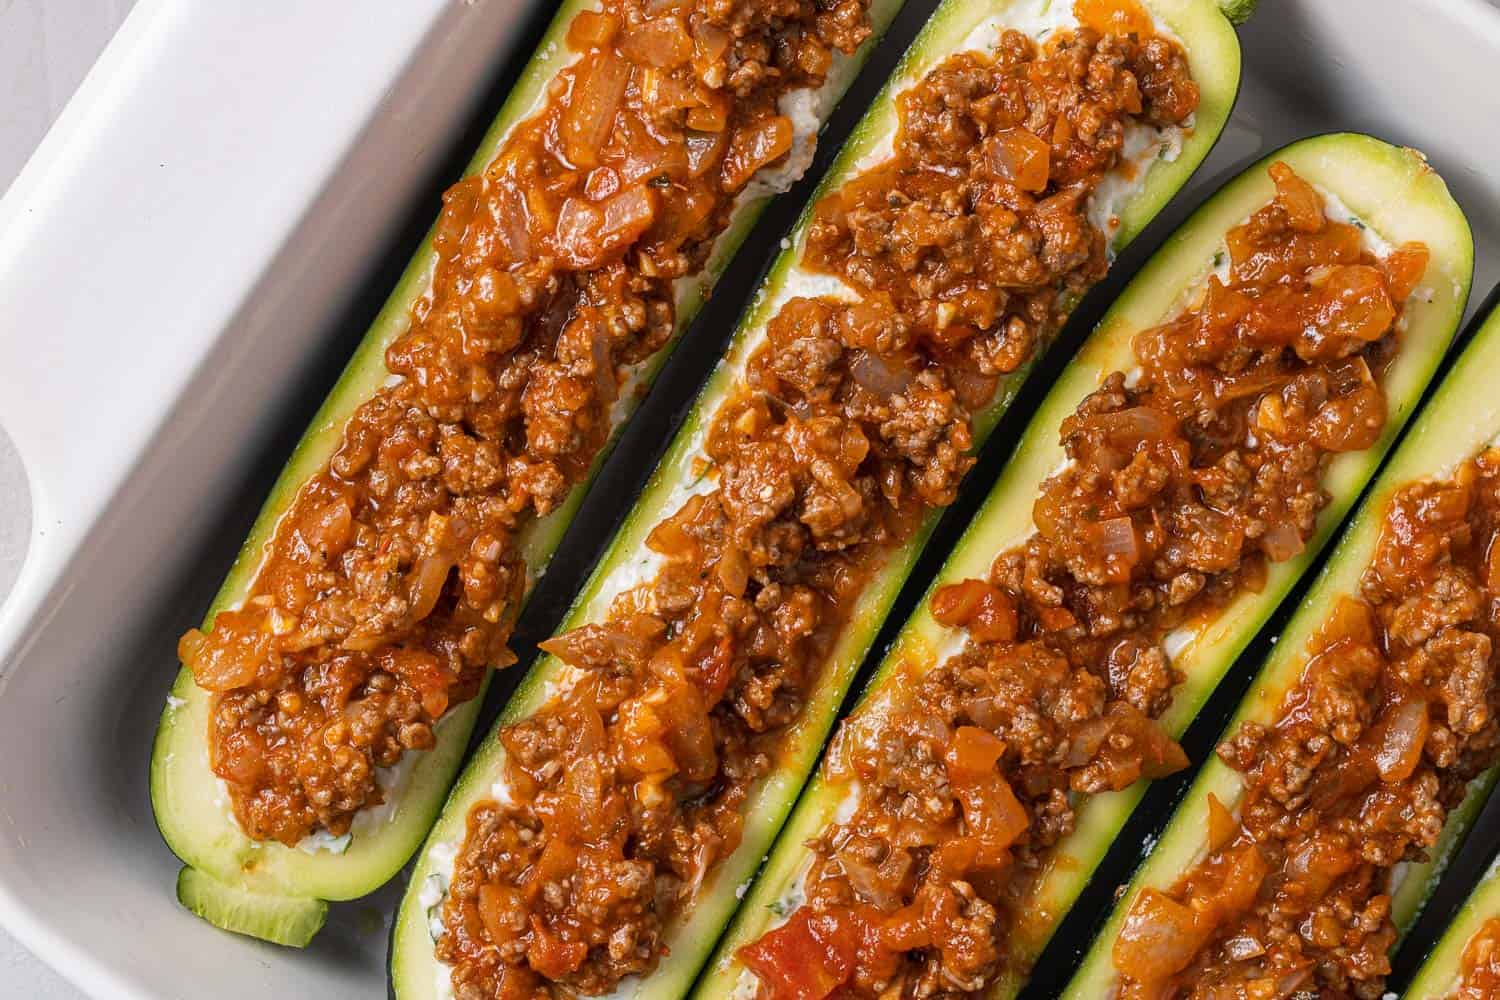 Zucchini boats topped with meat sauce.